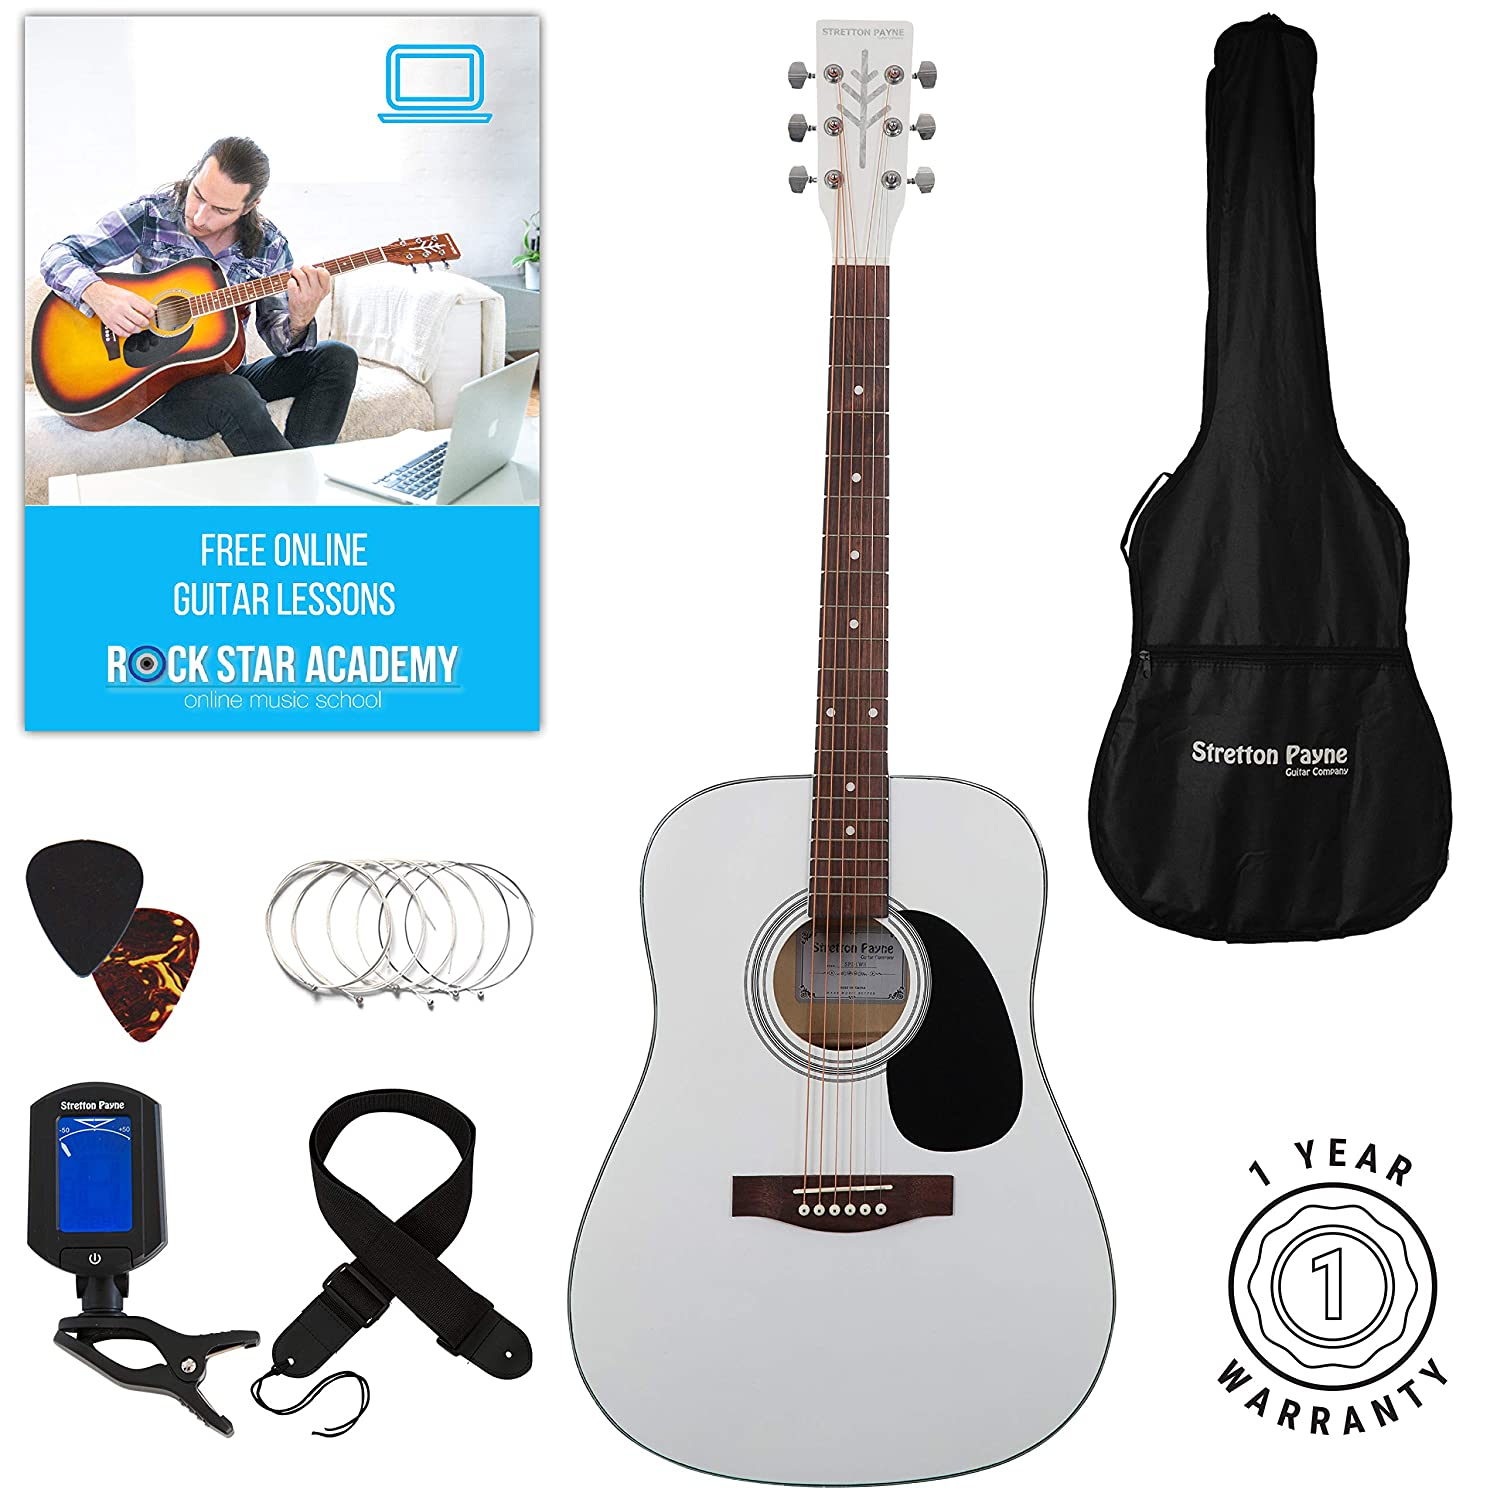 Stretton Payne Dreadnought Full Sized Steel String Acoustic Guitar PACKAGE D1 Black SPD1